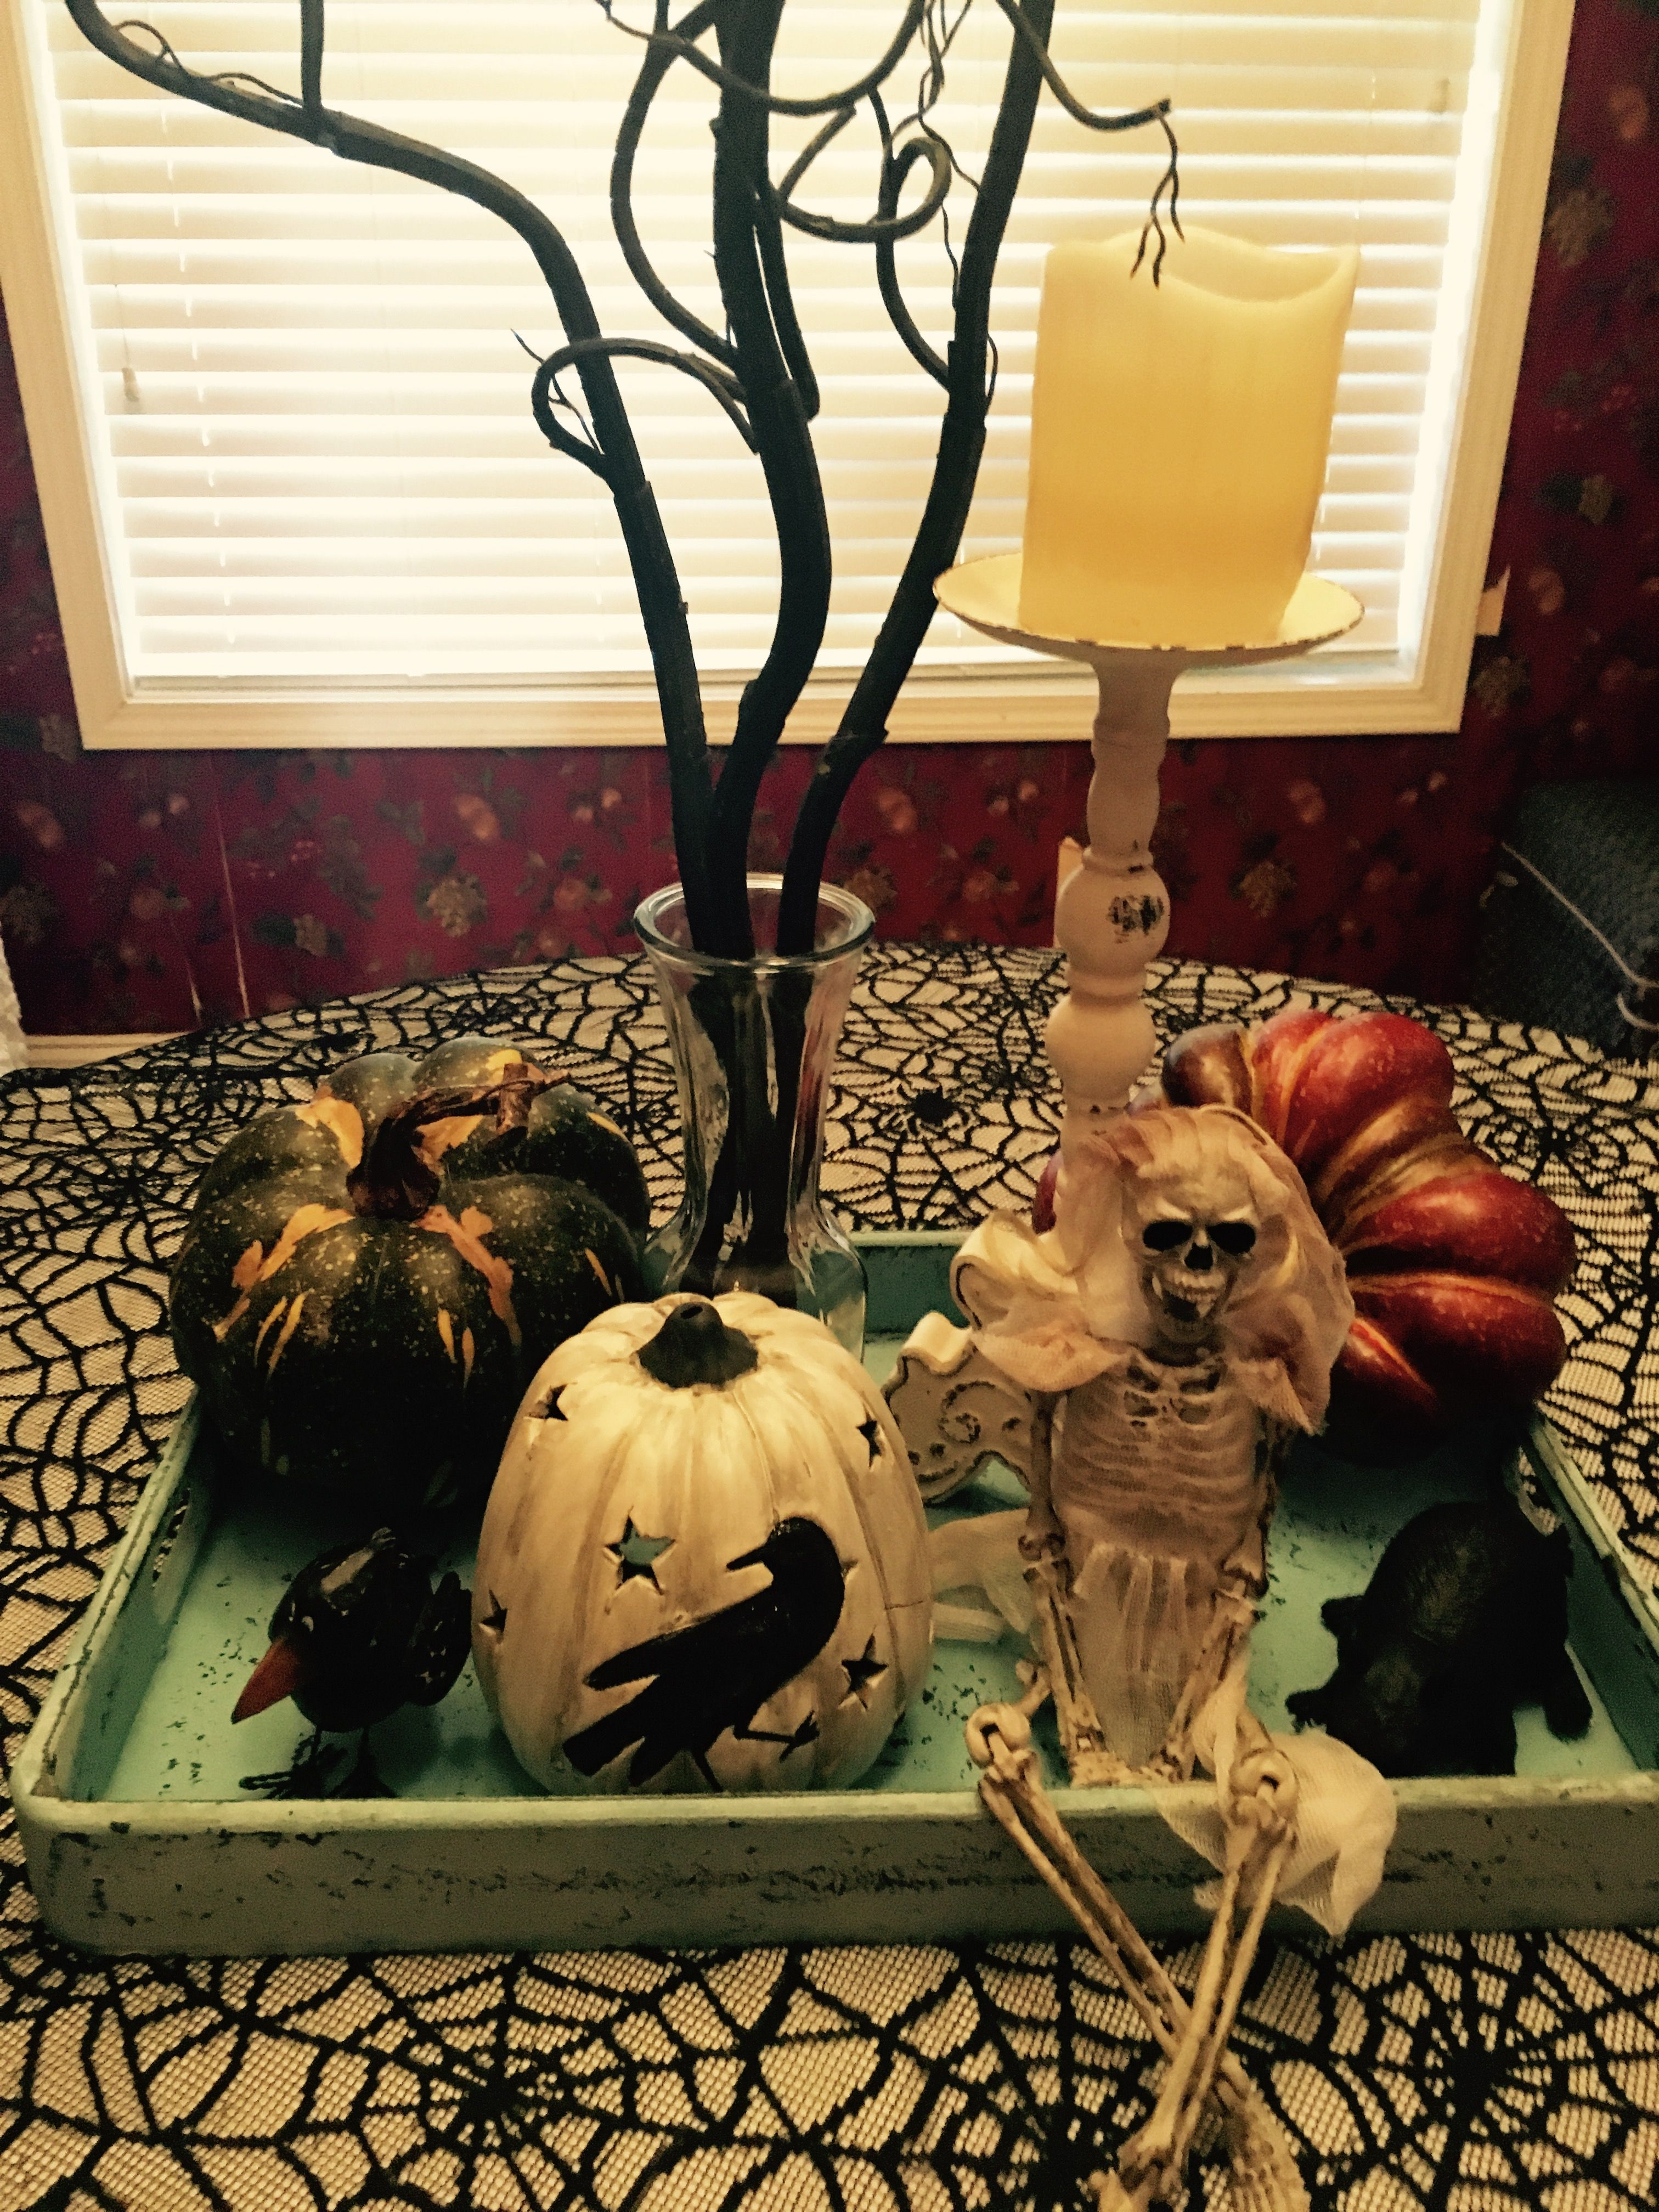 Pin by Renee Cheely on Fall/Halloween decorations Pinterest - fall and halloween decorations